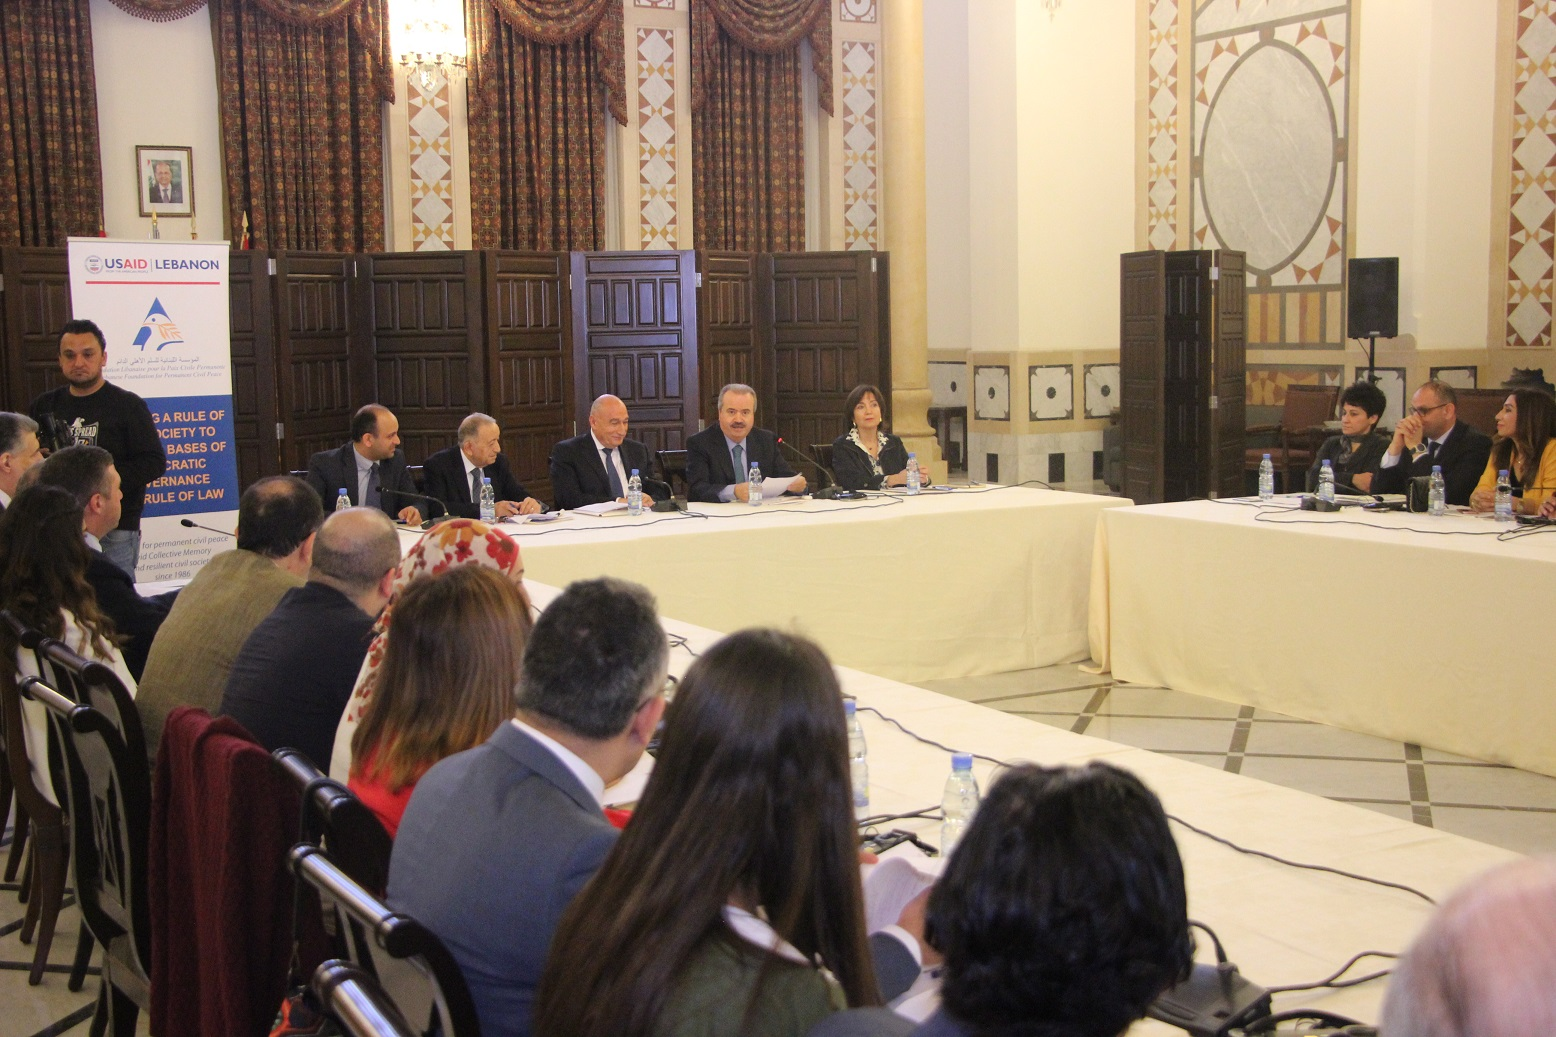 Food Safety in Lebanon: Needs, Governance, and Enforcement